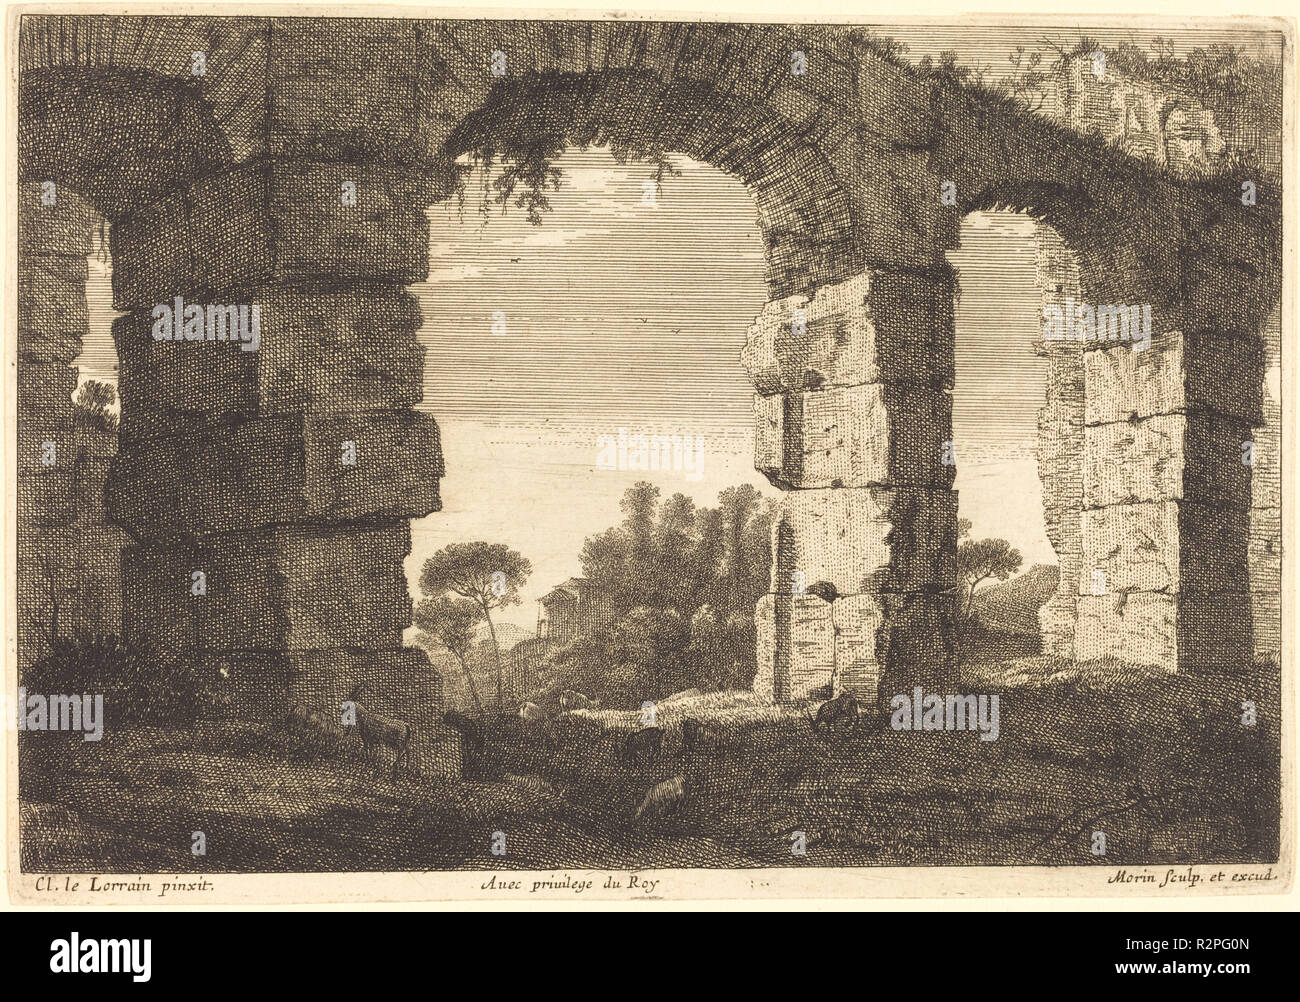 Ruins of an Aquaduct. Medium: engraving and etching. Museum: National Gallery of Art, Washington DC. Author: Jean Morin after Claude Lorrain. Jean Morin. After Claude Lorrain (Claude Gellée). - Stock Image